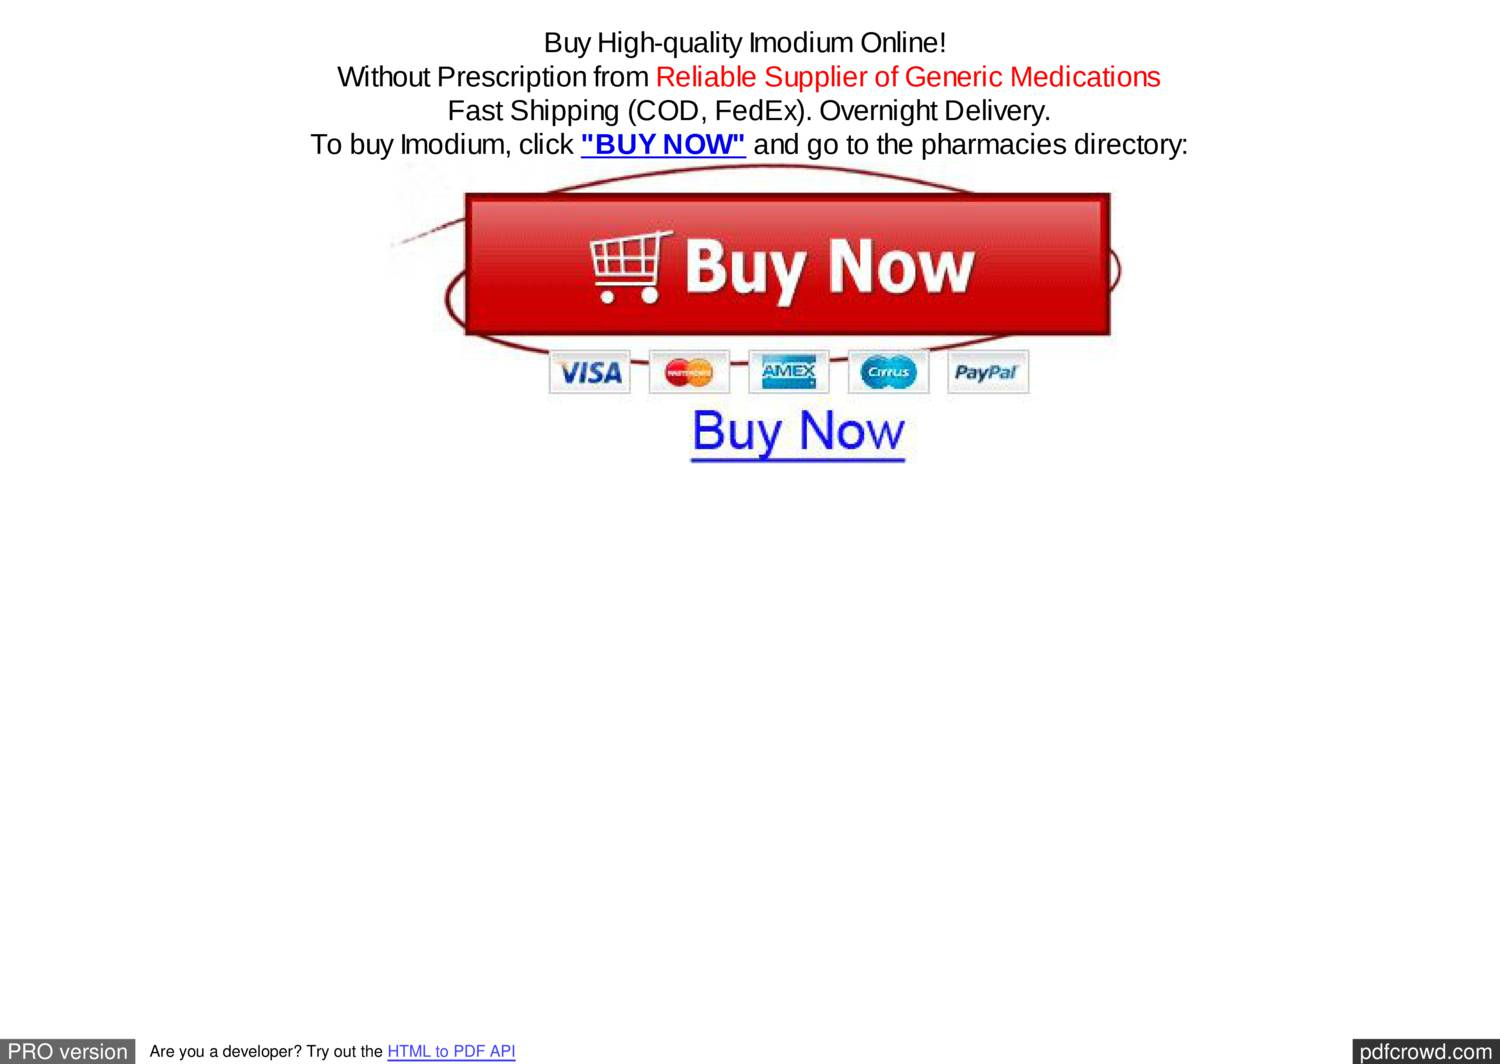 kamagra online cod overnight delivery